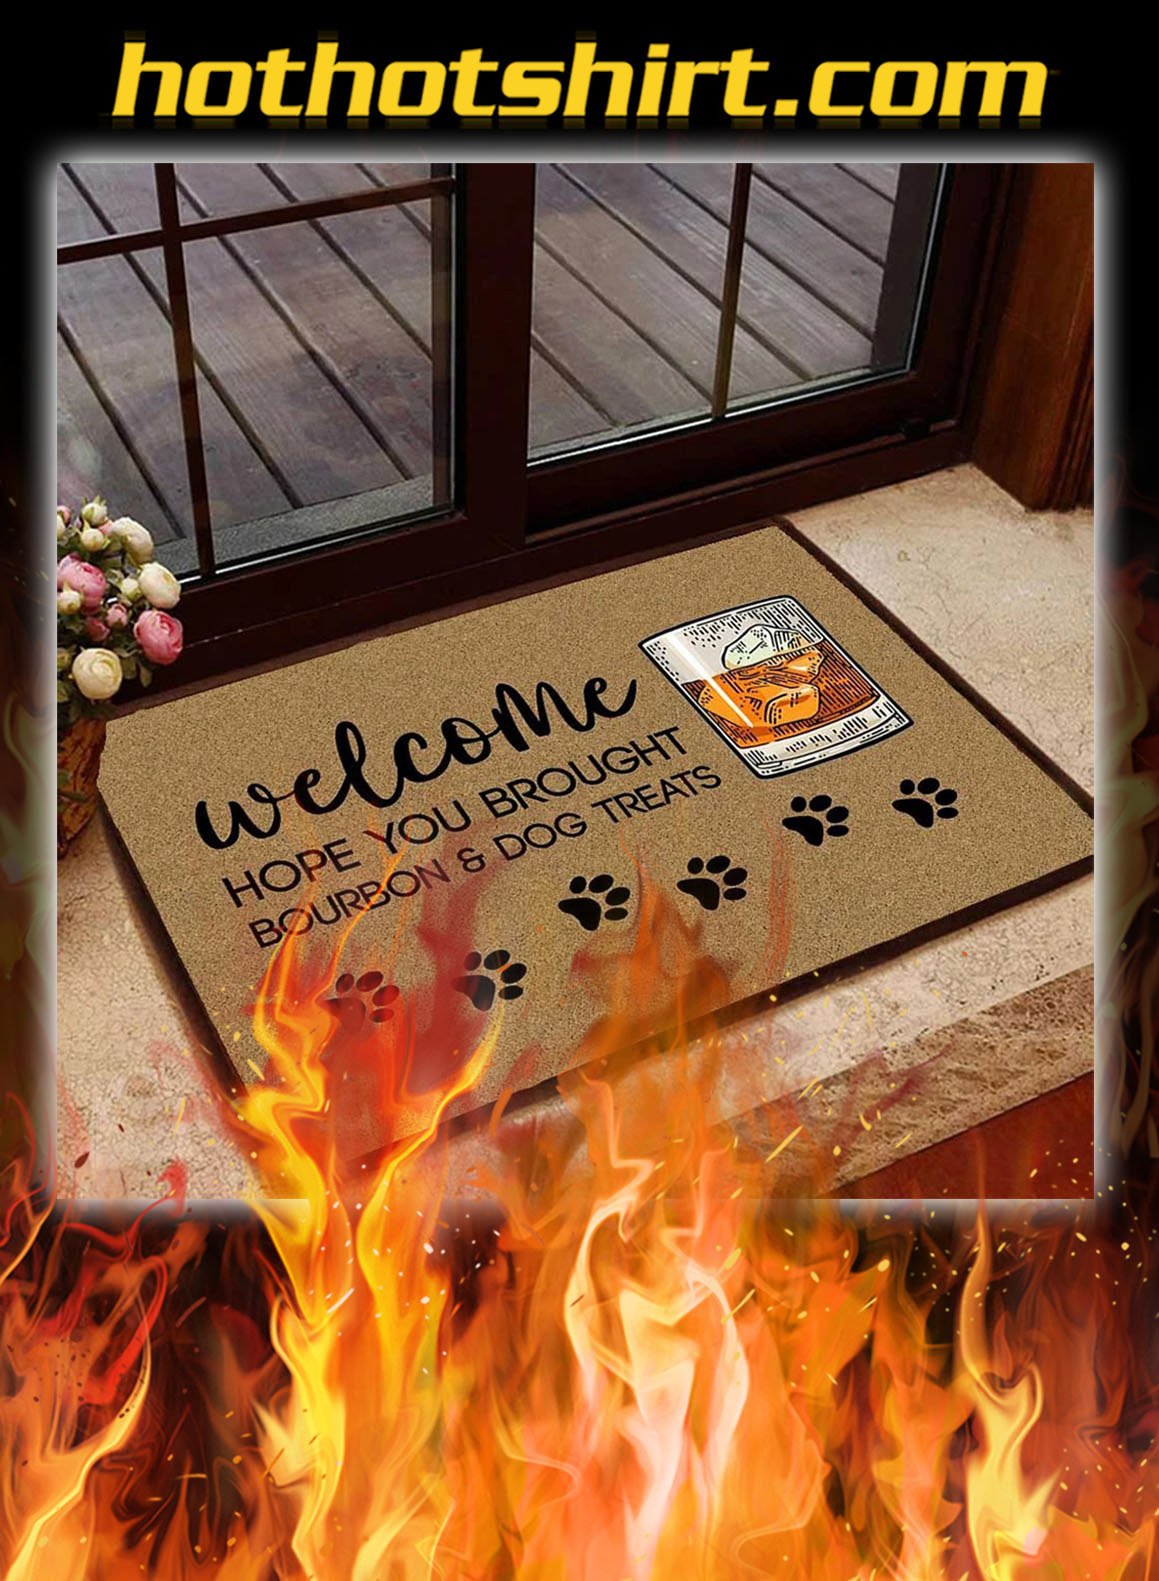 Welcome hope you brought bourbon and dog treats doormat - pic 1